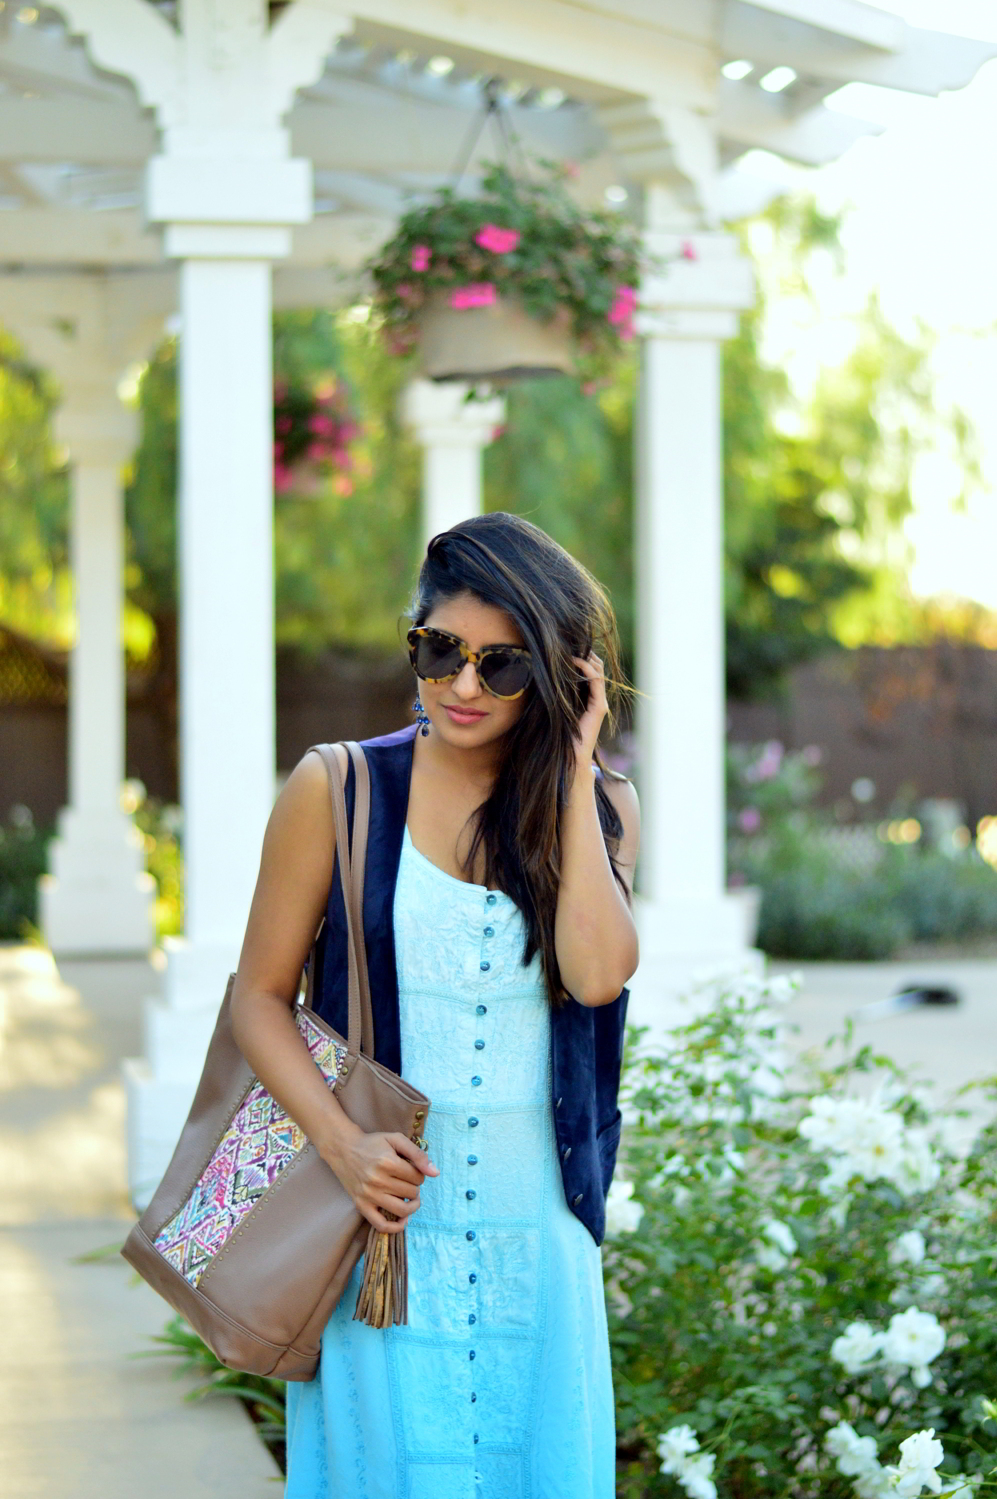 embroidered-maxi-dress-suede-vest-fall-california-blogger-style-outfit 5